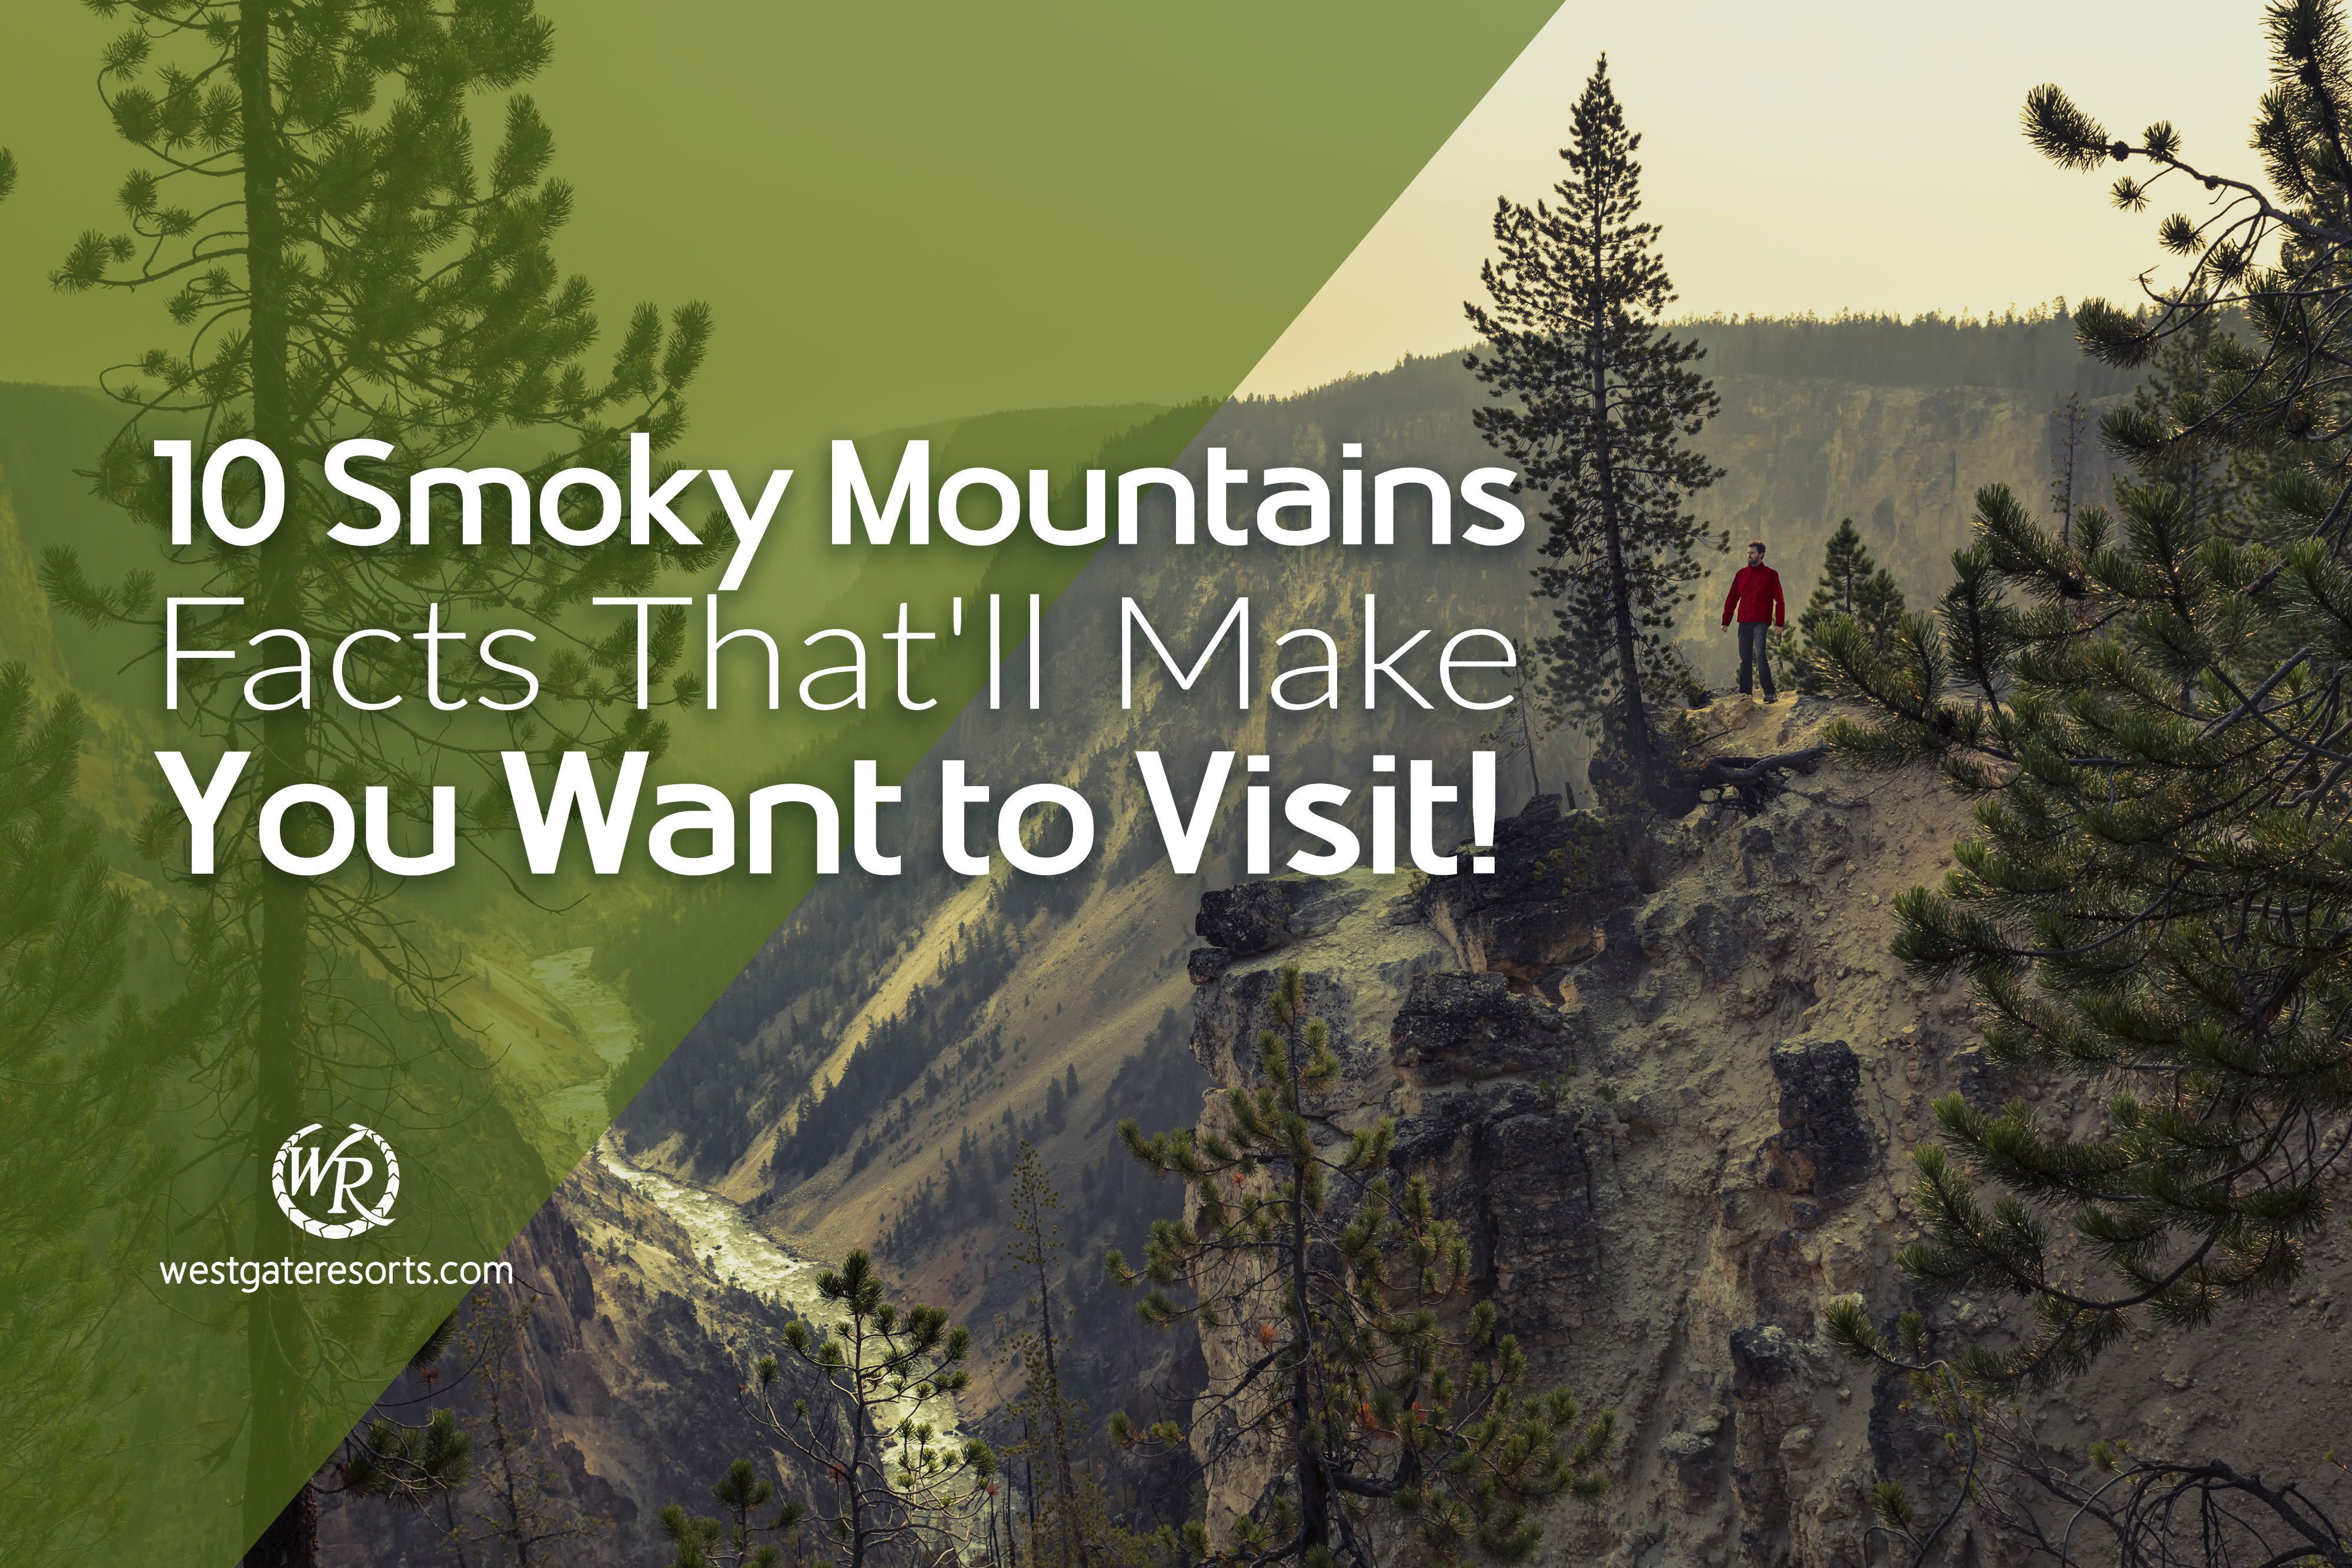 10 Smoky Mountains Facts That'll Make You Want to Visit!